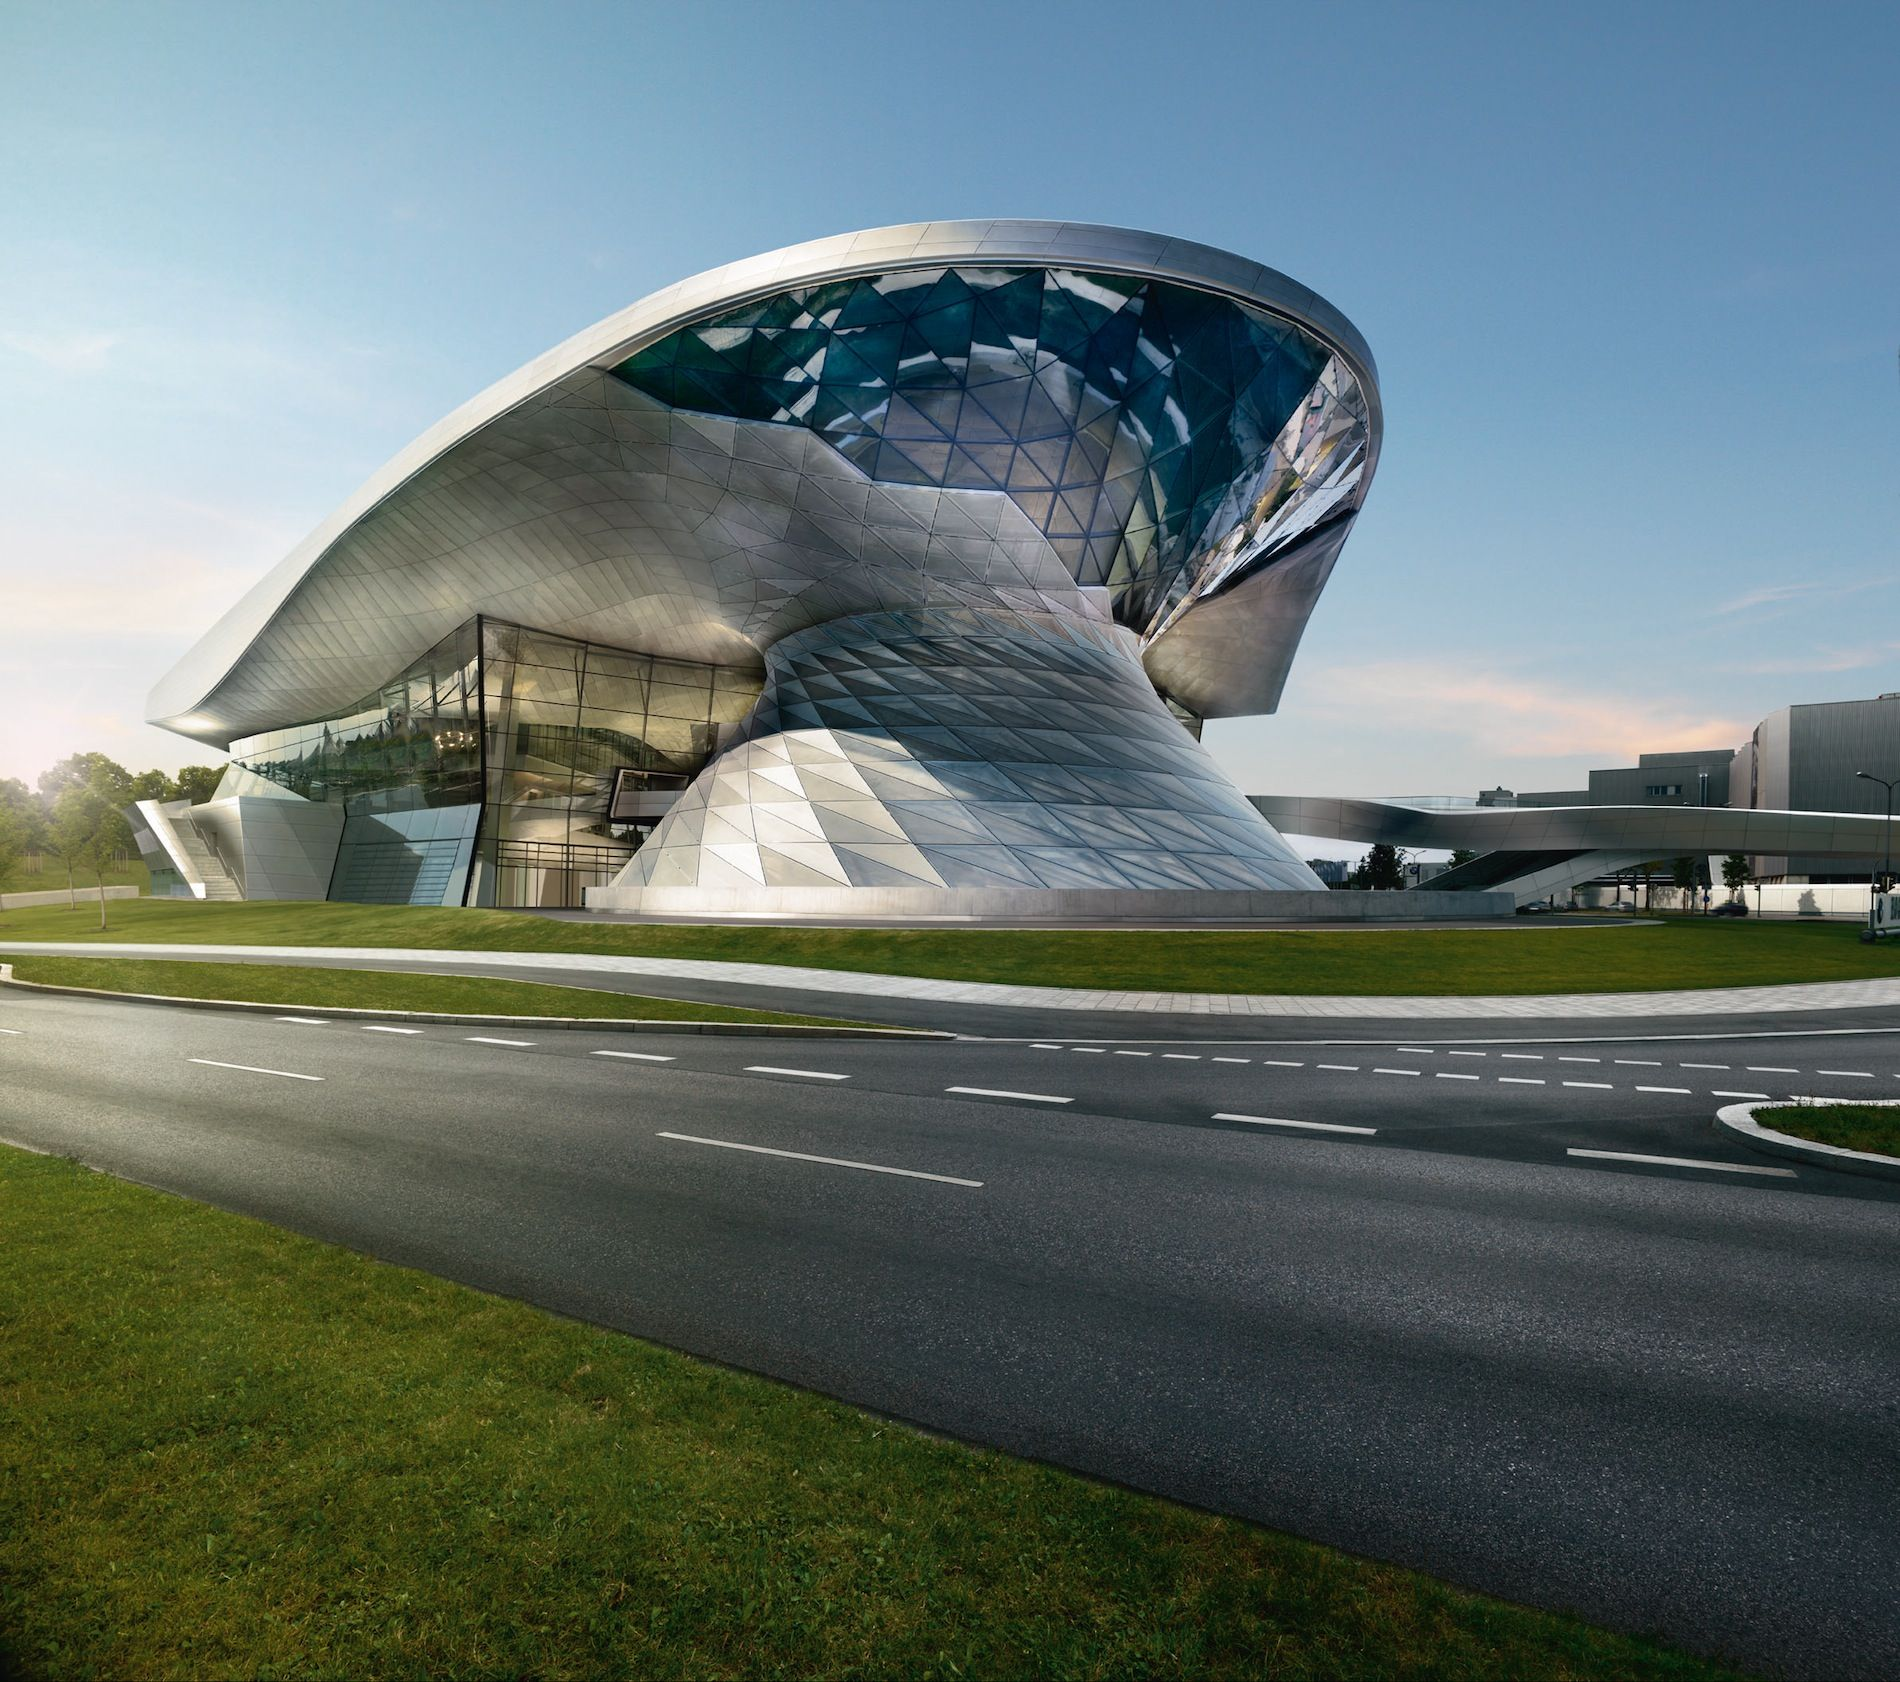 The Complete Bmw Welt Experience Bmw Welt Bmw Museum And Bmw Munich Plant Bmw Museum Architecture Unique Buildings